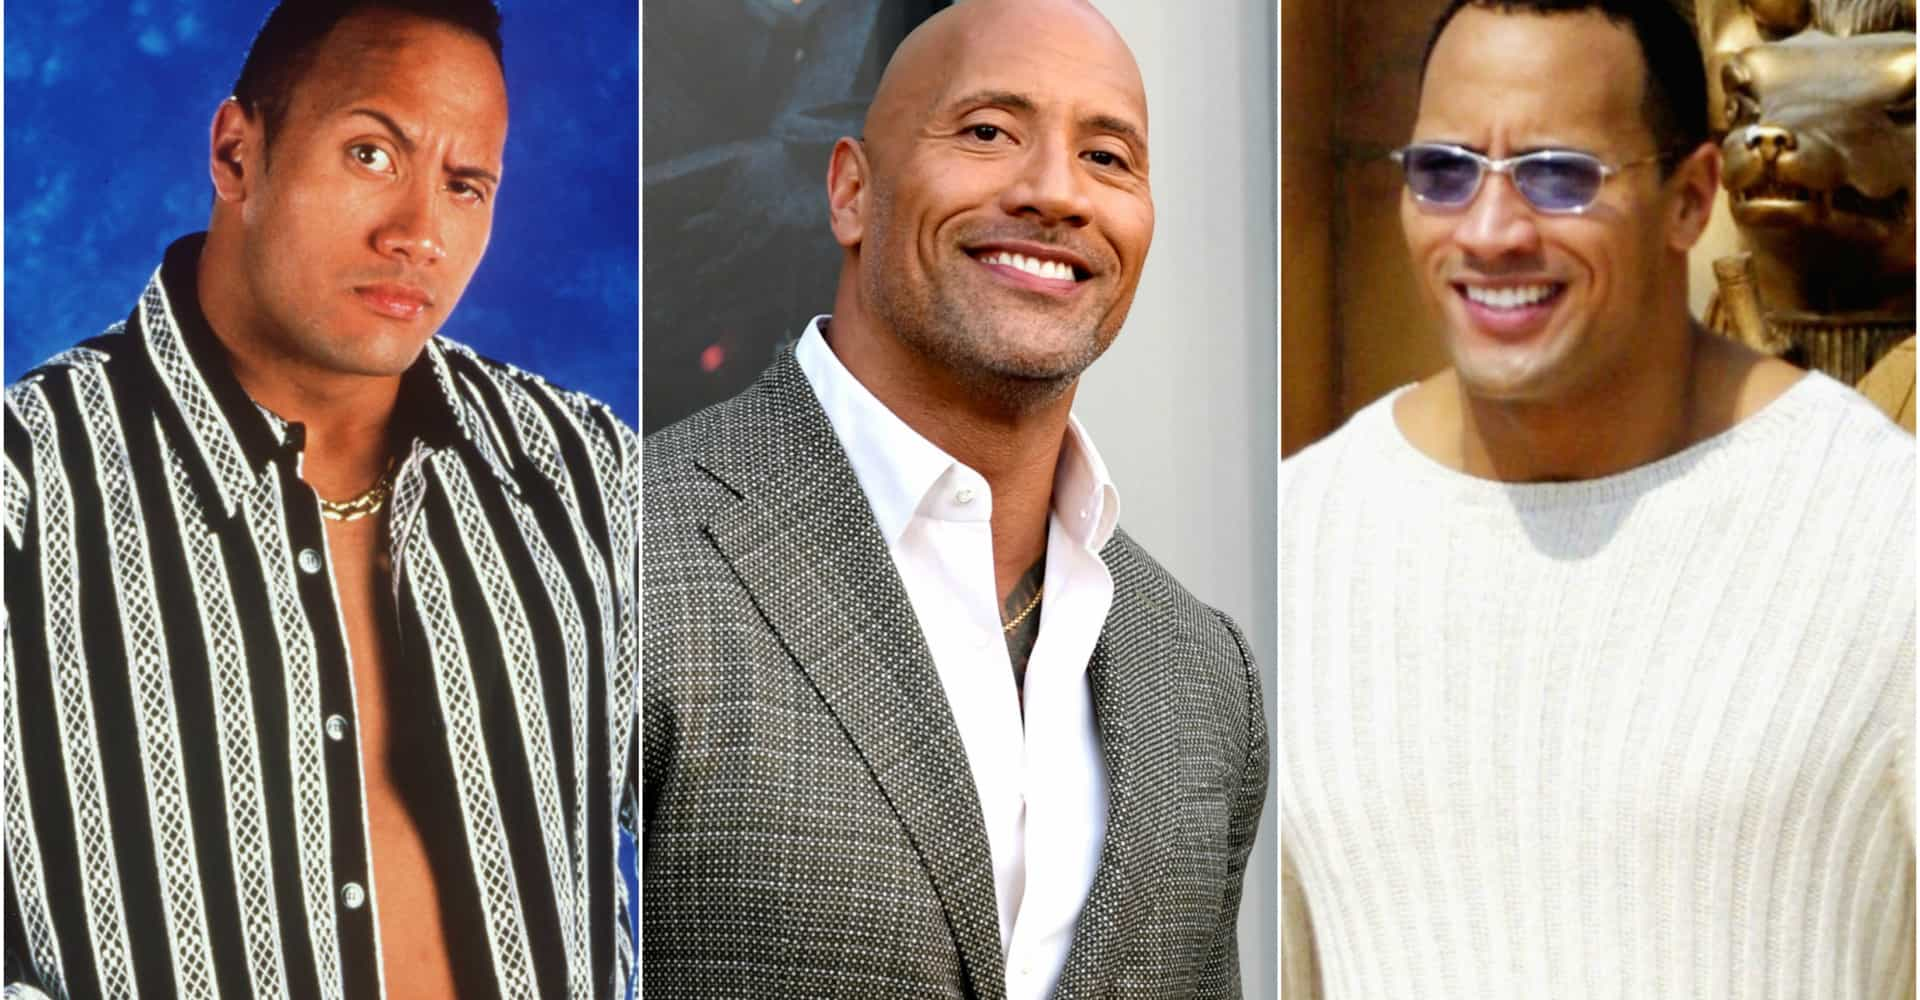 The Rock's birthday: watch Dwayne Johnson's style evolve through the years